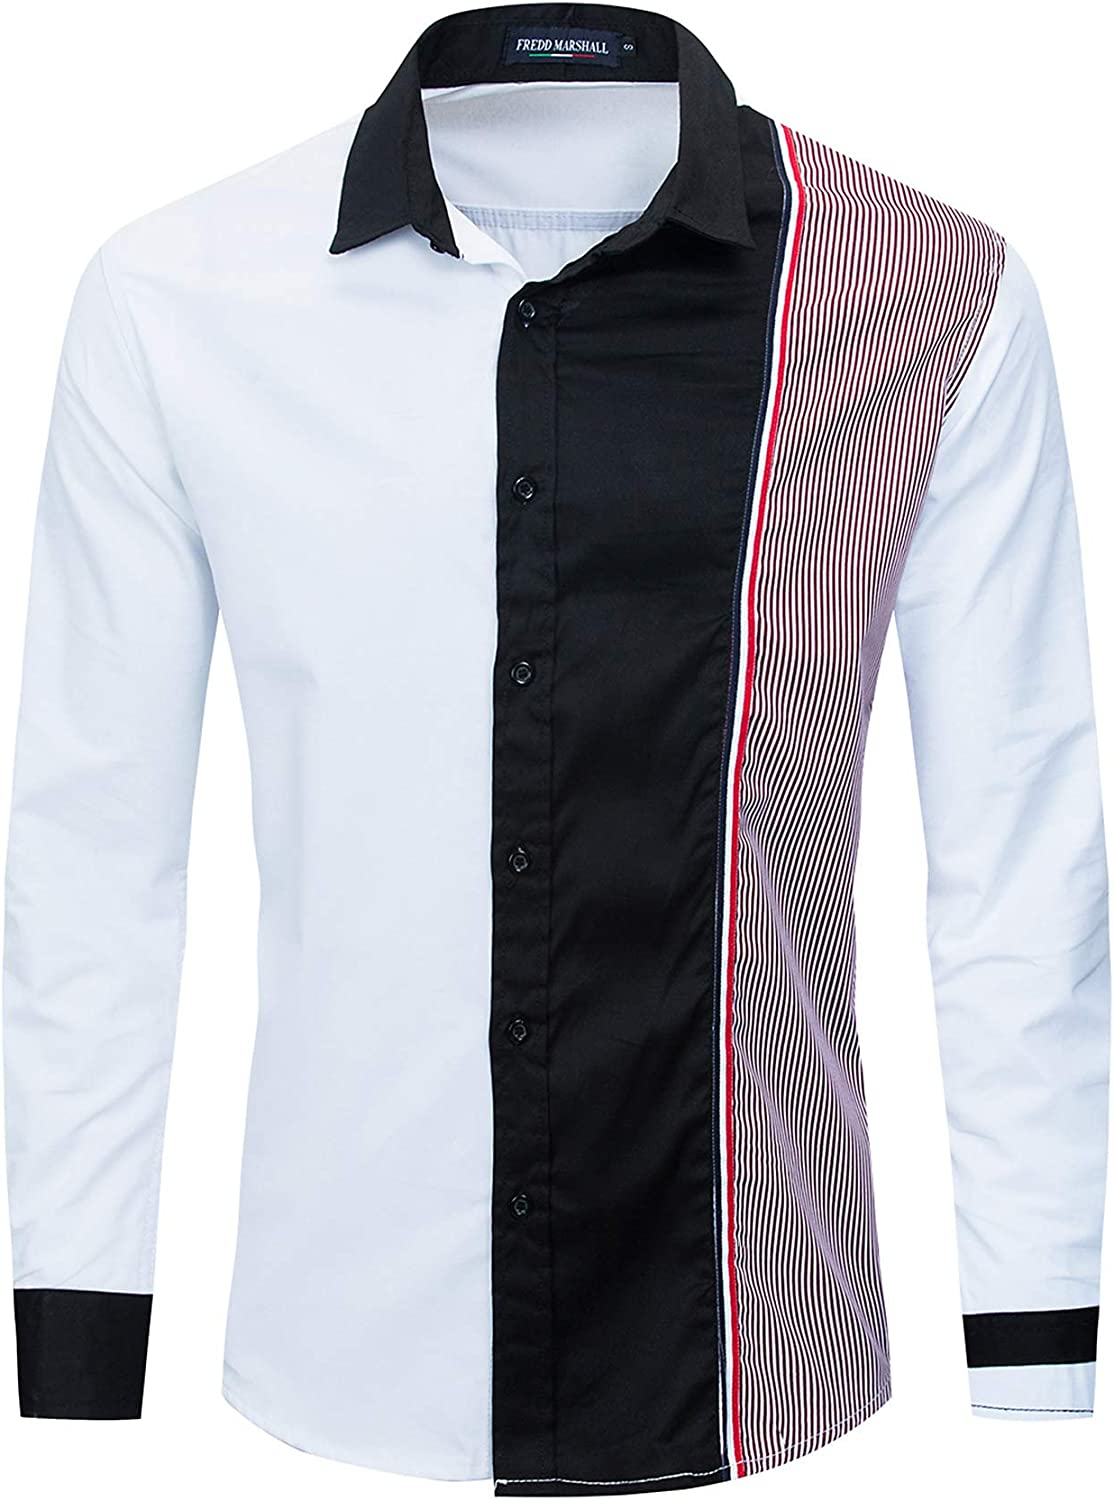 FREDD MARSHALL Men's Casual Slim Fit Long Sleeve Button Down Patchwork Shirts